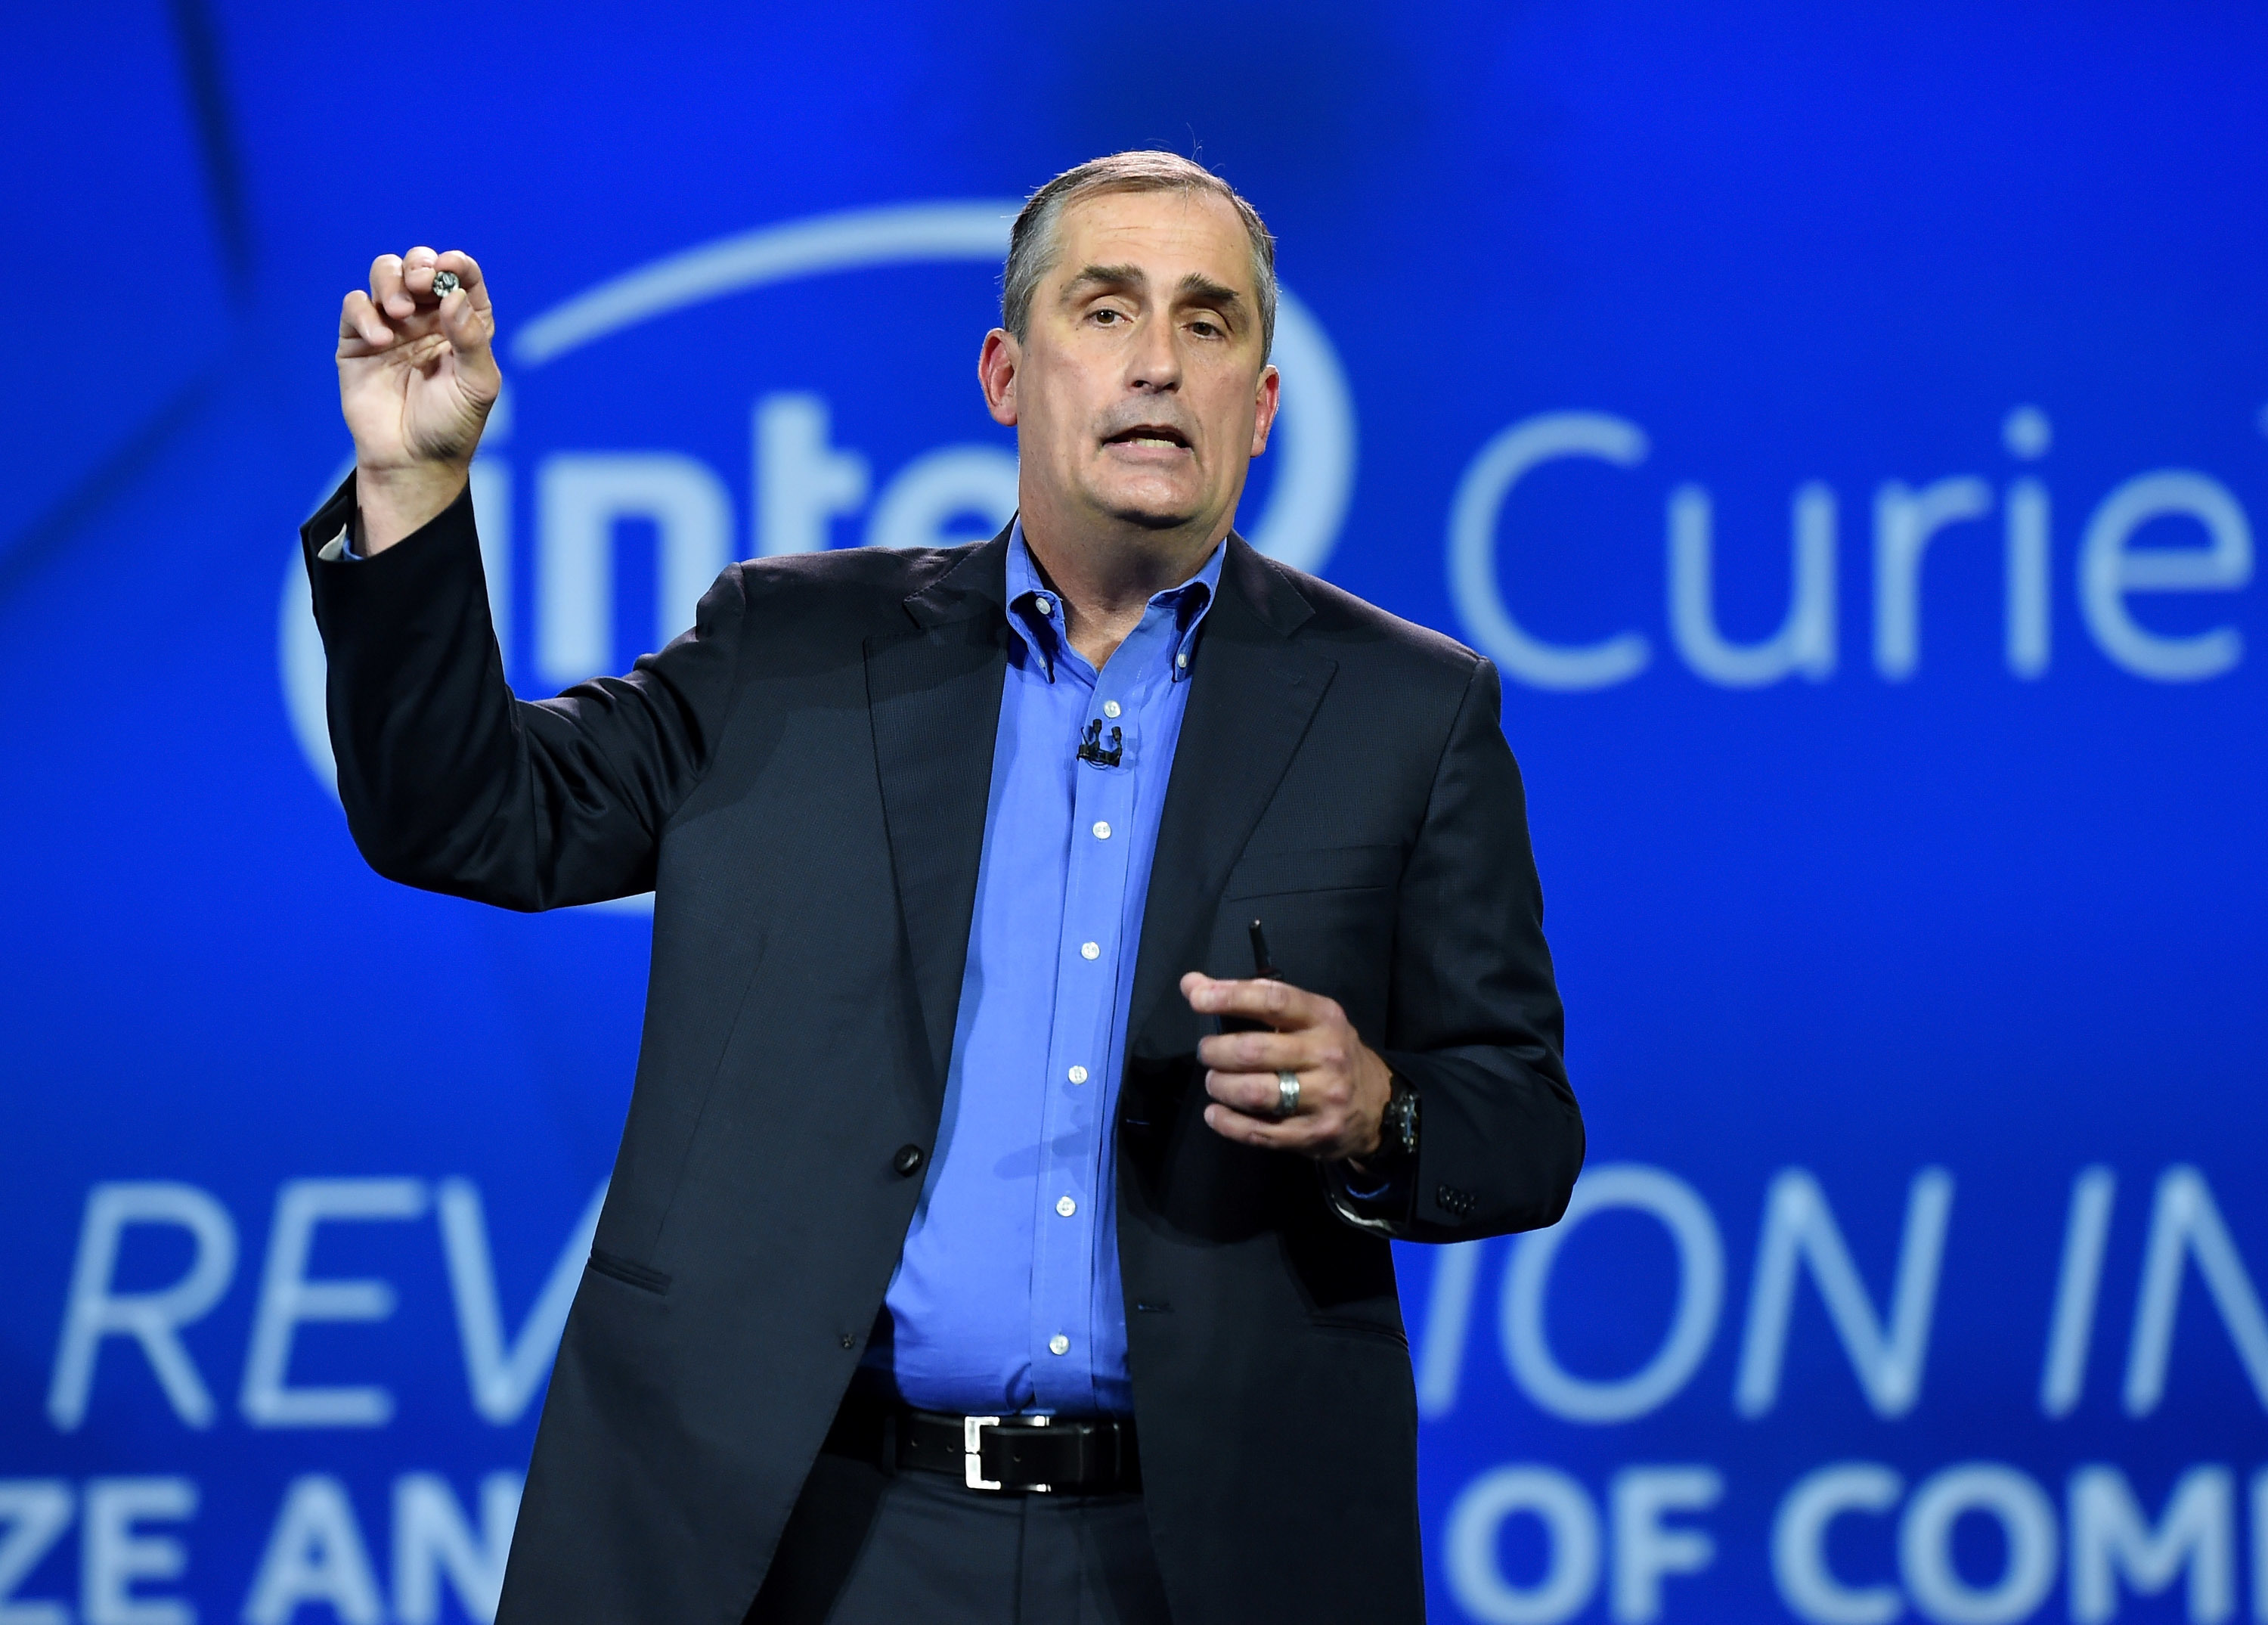 LAS VEGAS, NV - JANUARY 06:  Intel Corp. CEO Brian Krzanich unveils a wearable processor called Curie, a prototype open source computer the size of a button, at the 2015 International CES at The Venetian Las Vegas on January 6, 2015 in Las Vegas, Nevada.   (Photo by Ethan Miller/Getty Images)